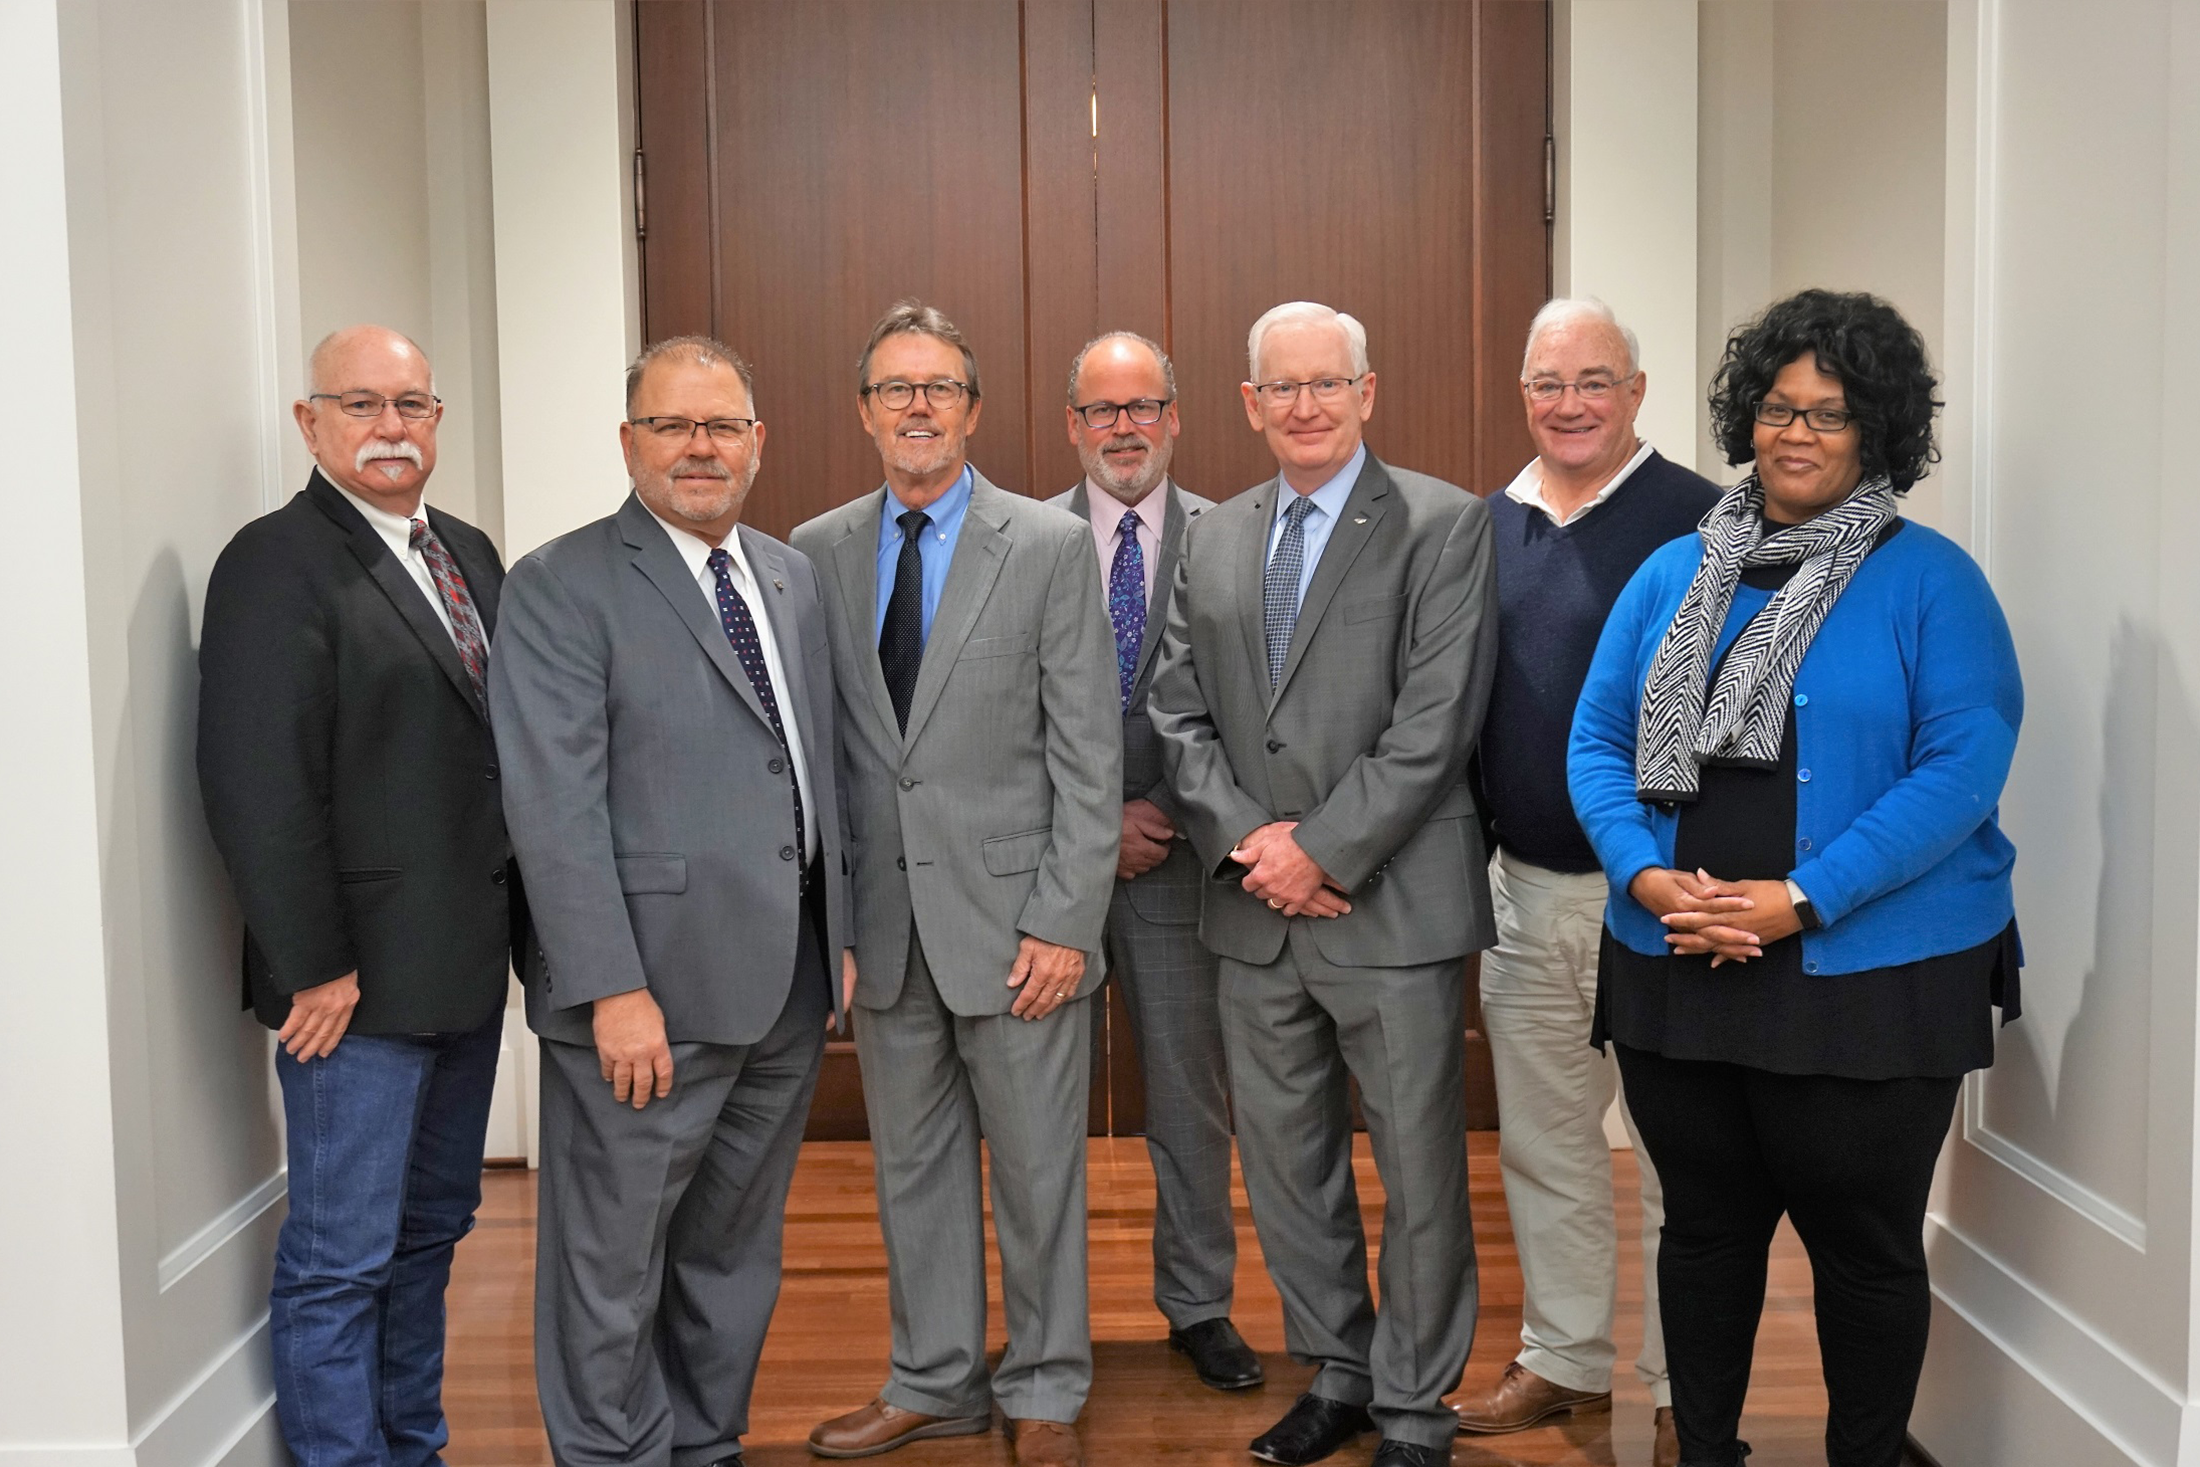 The Atlanta Fed's Organized Labor Advisory Council